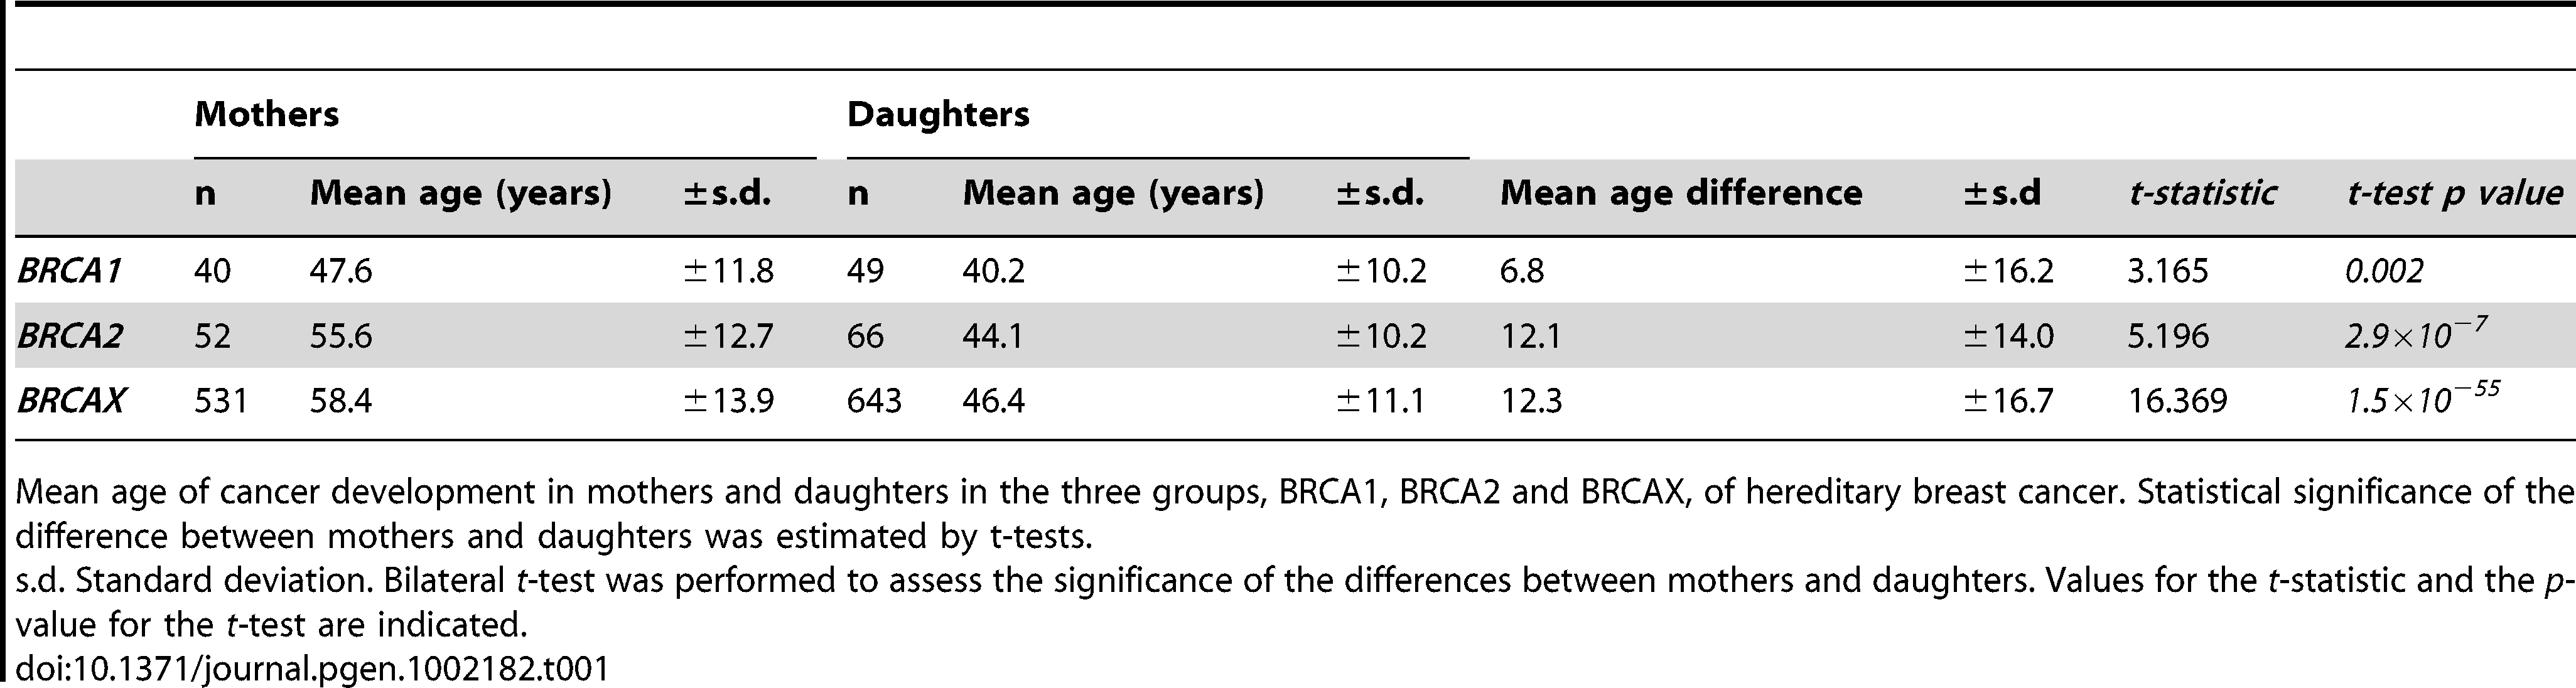 Difference in the age of onset of breast cancer between mothers and daughters in hereditary breast cancer.